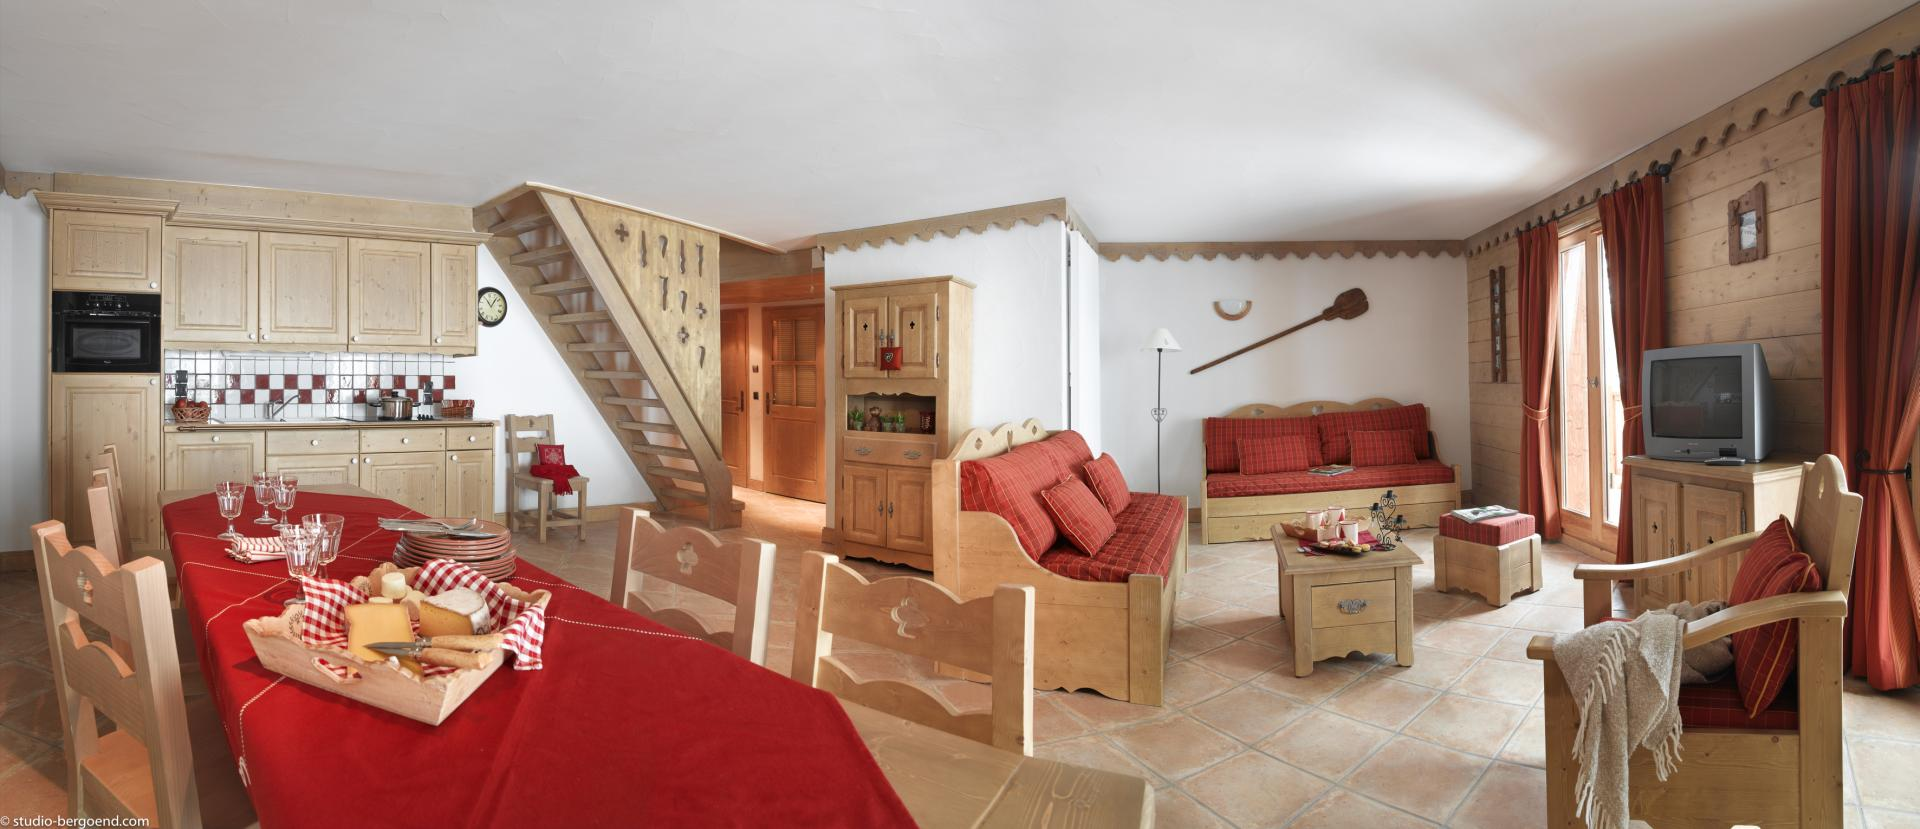 Les Chalets du Gypse, St Martin (self catered apartments) - Duplex Apartment